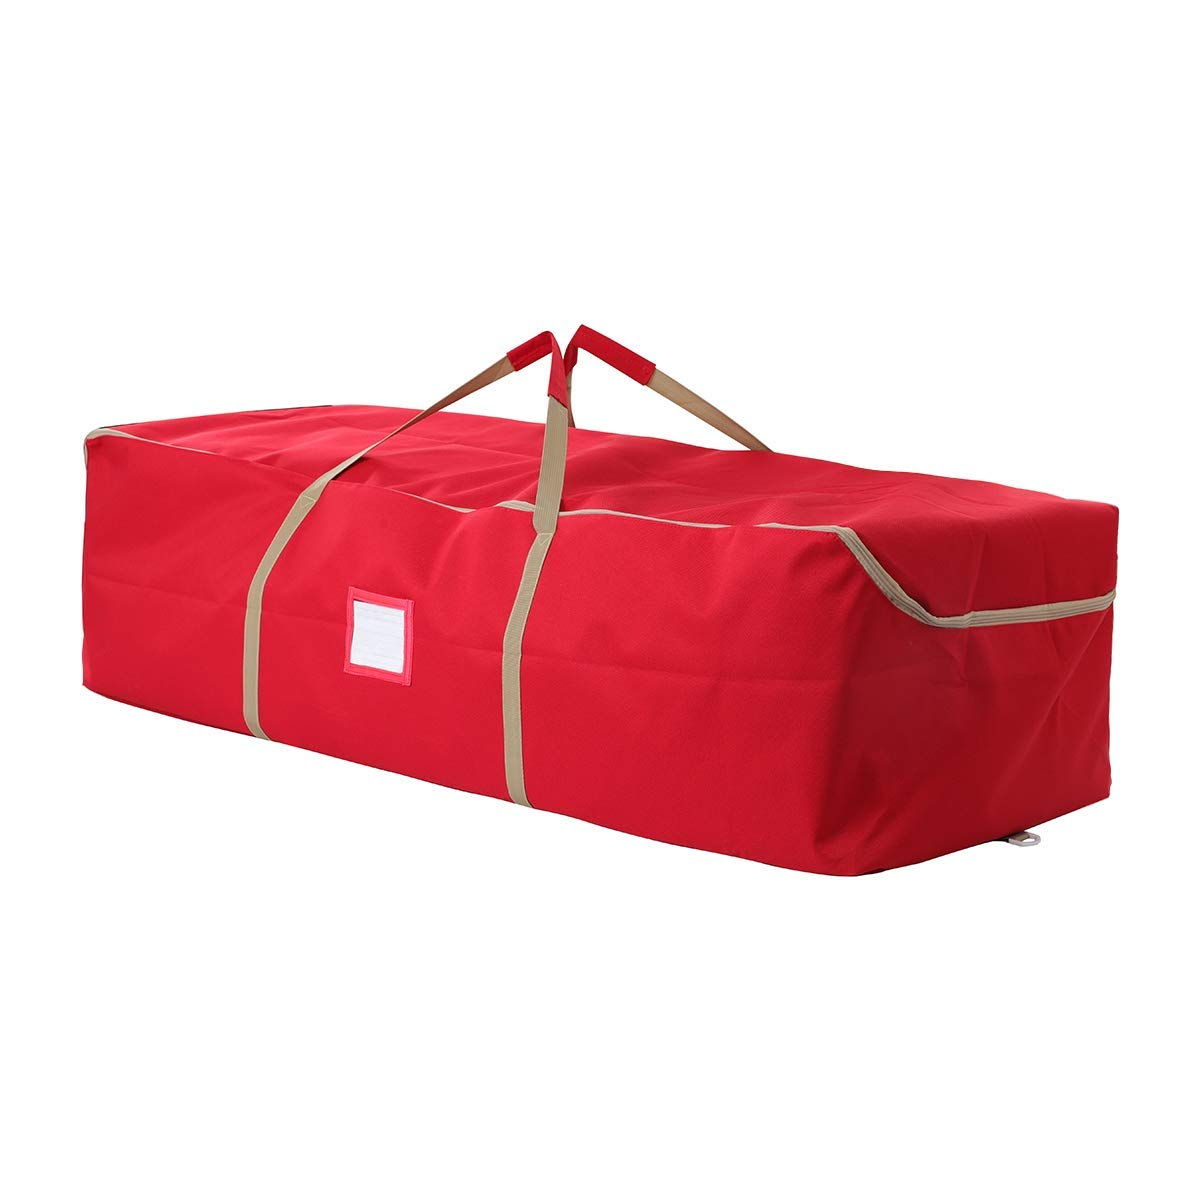 """iiSPORT Christmas Tree Storage Bag Large Holiday Storage Duffel Bags Containers Made of 600D Oxford, 49"""" Long X 20"""" Wide X 14"""" Height, Red"""